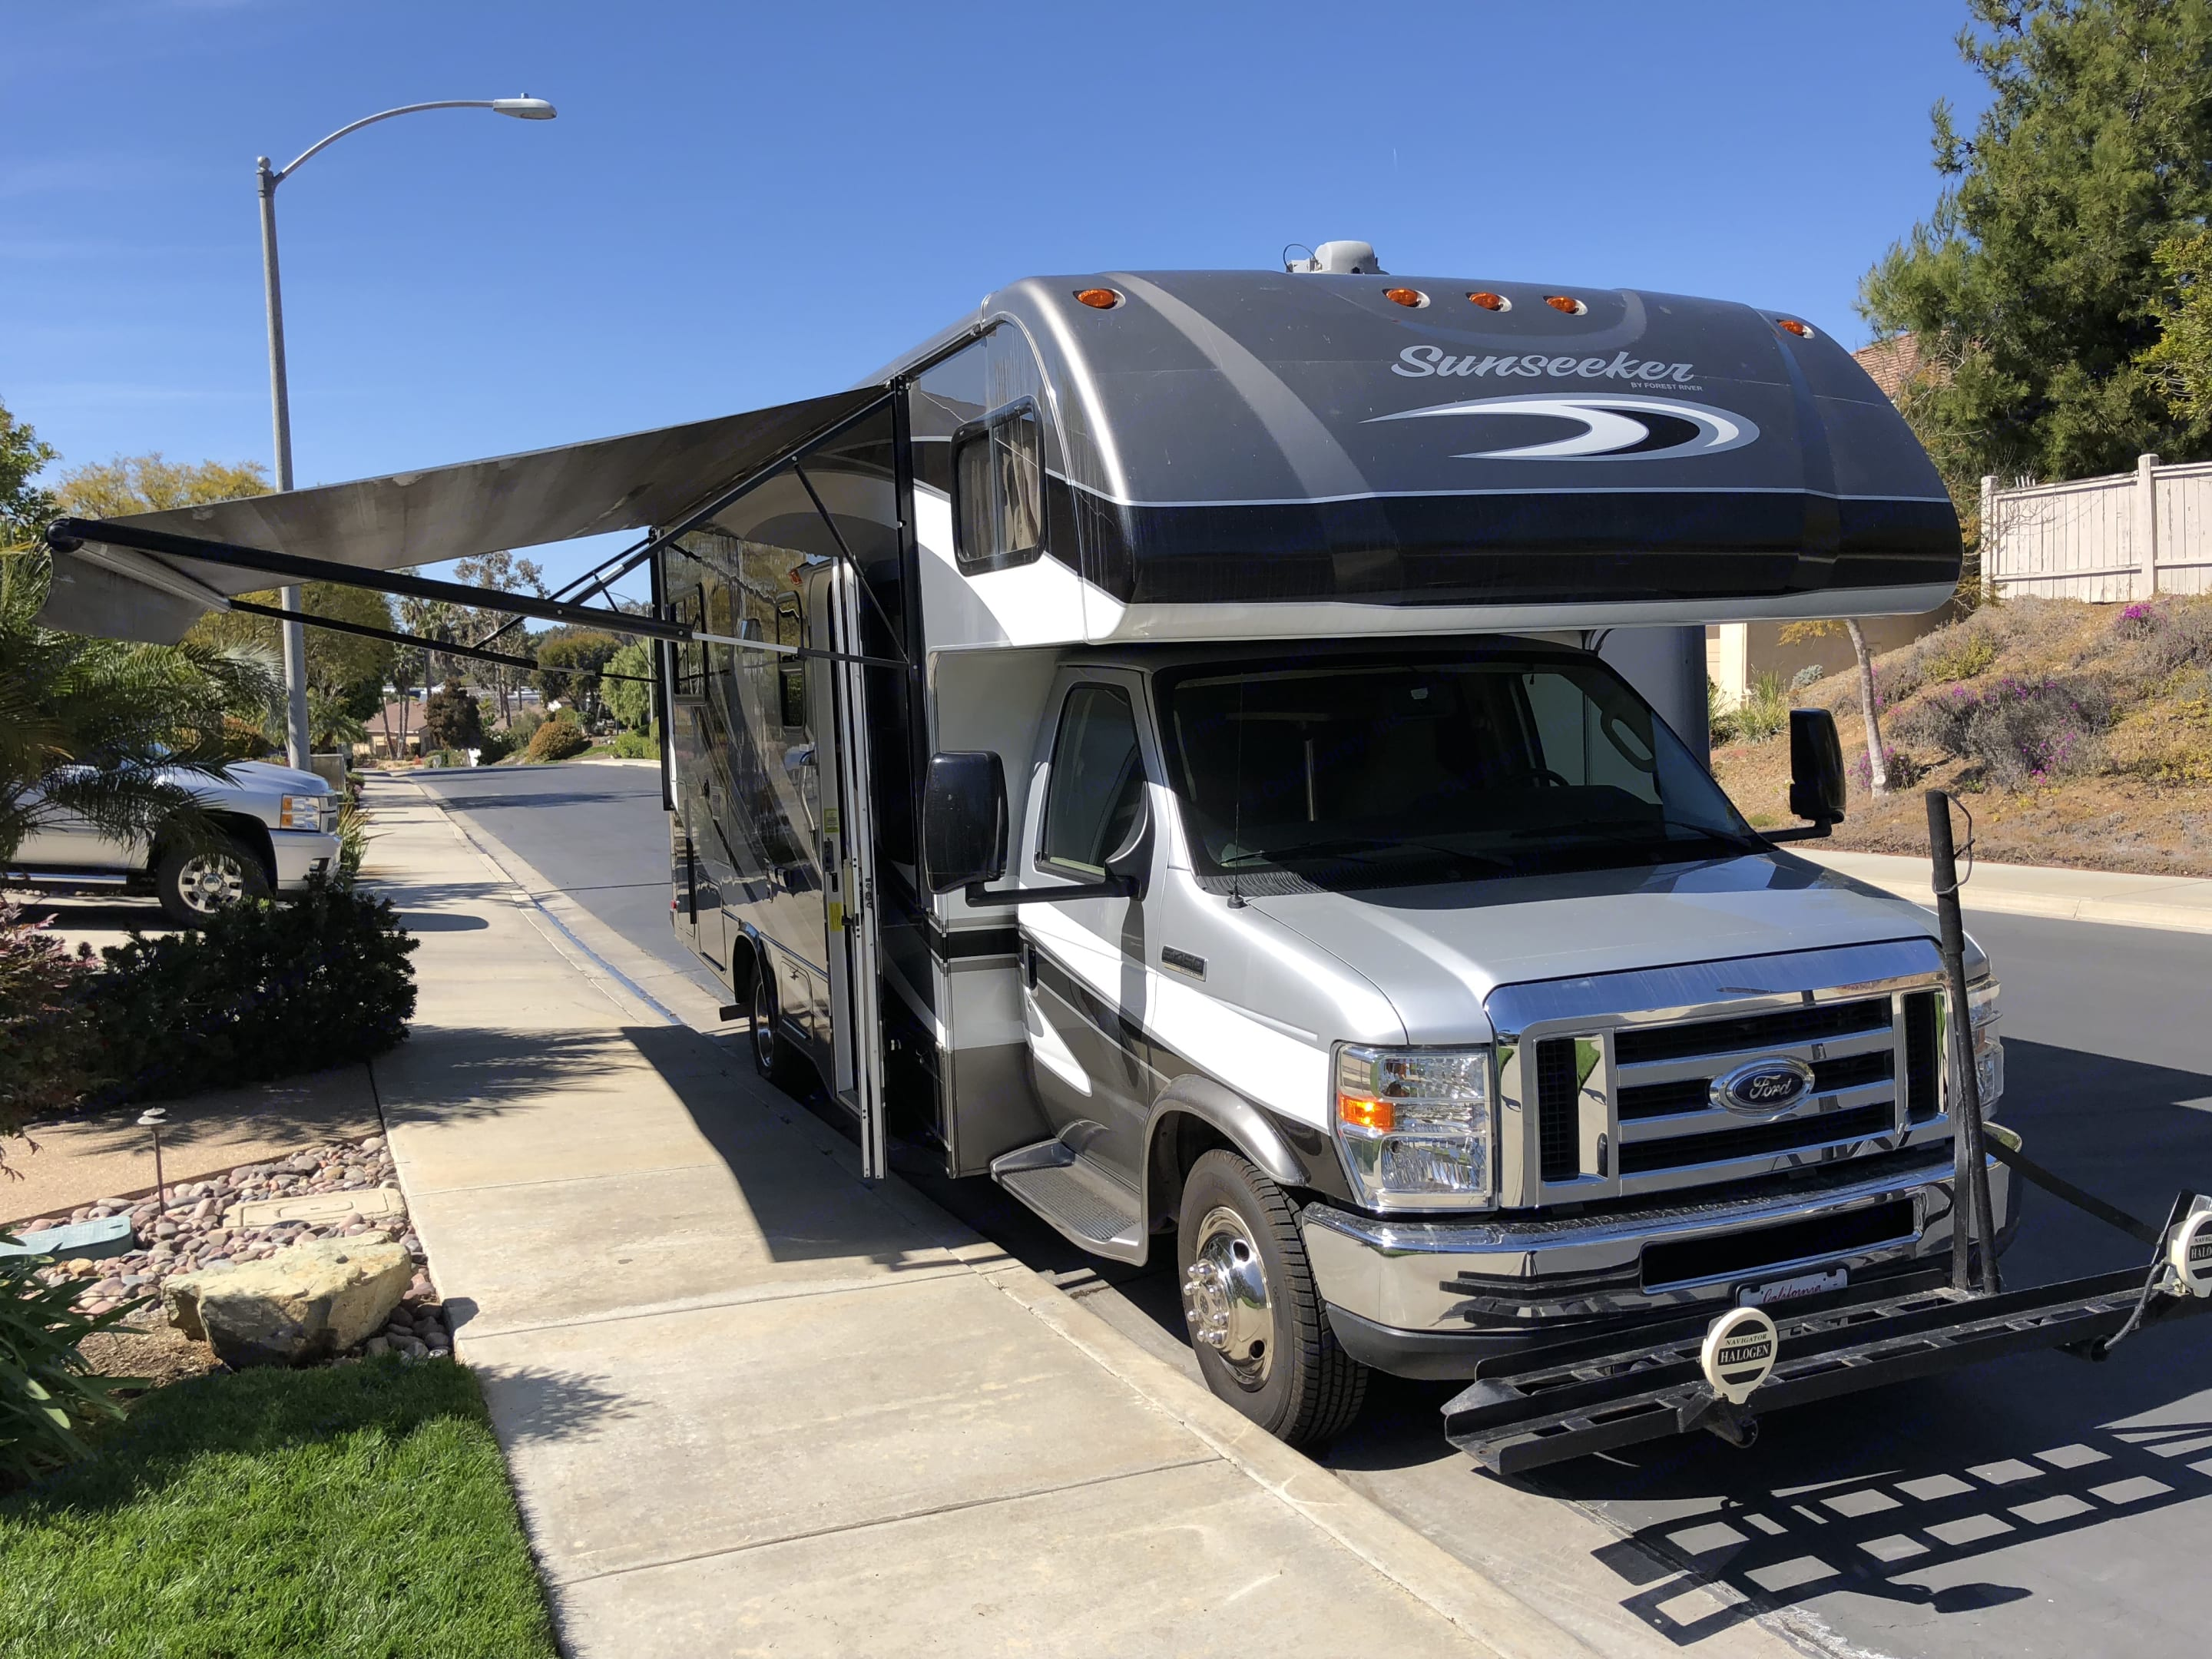 Front View - motorcycle carrier and awning extended.. Forest River Sunseeker 2014